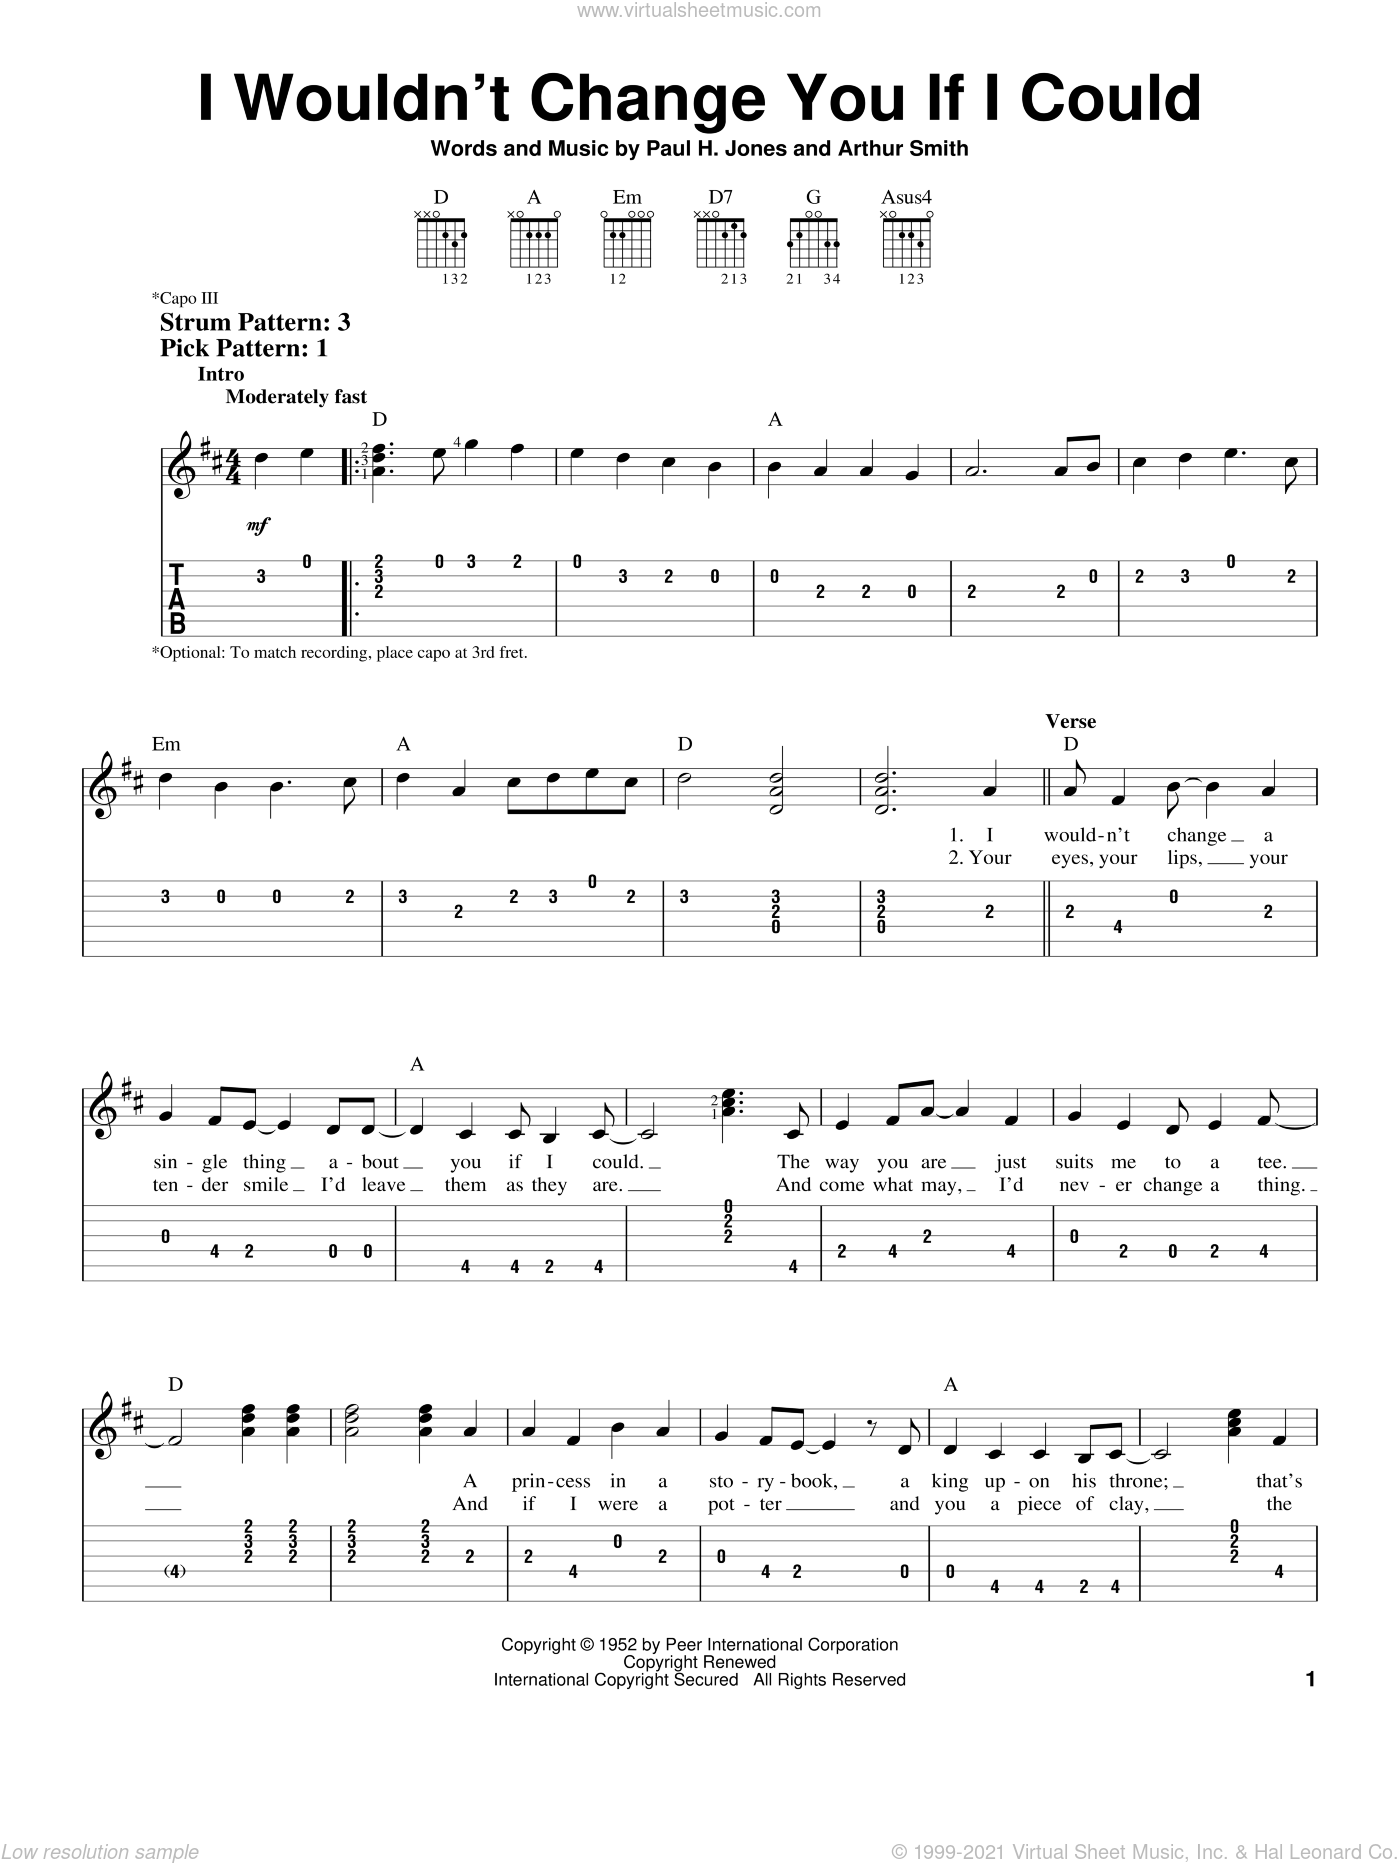 I Wouldn't Change You If I Could sheet music for guitar solo (easy tablature) by Paul H. Jones